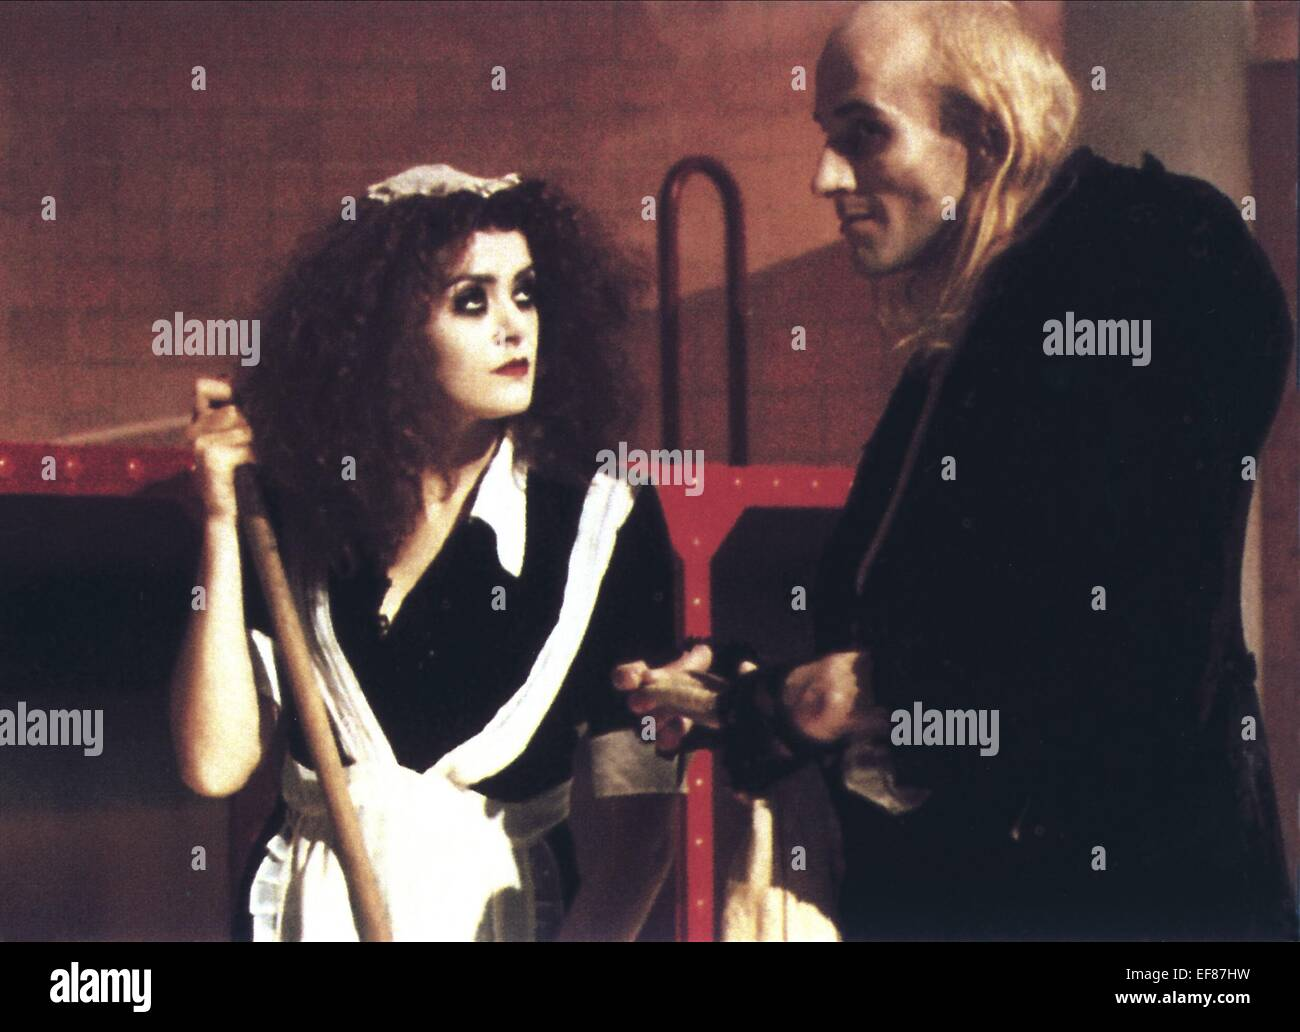 rocky horror picture show download movie free